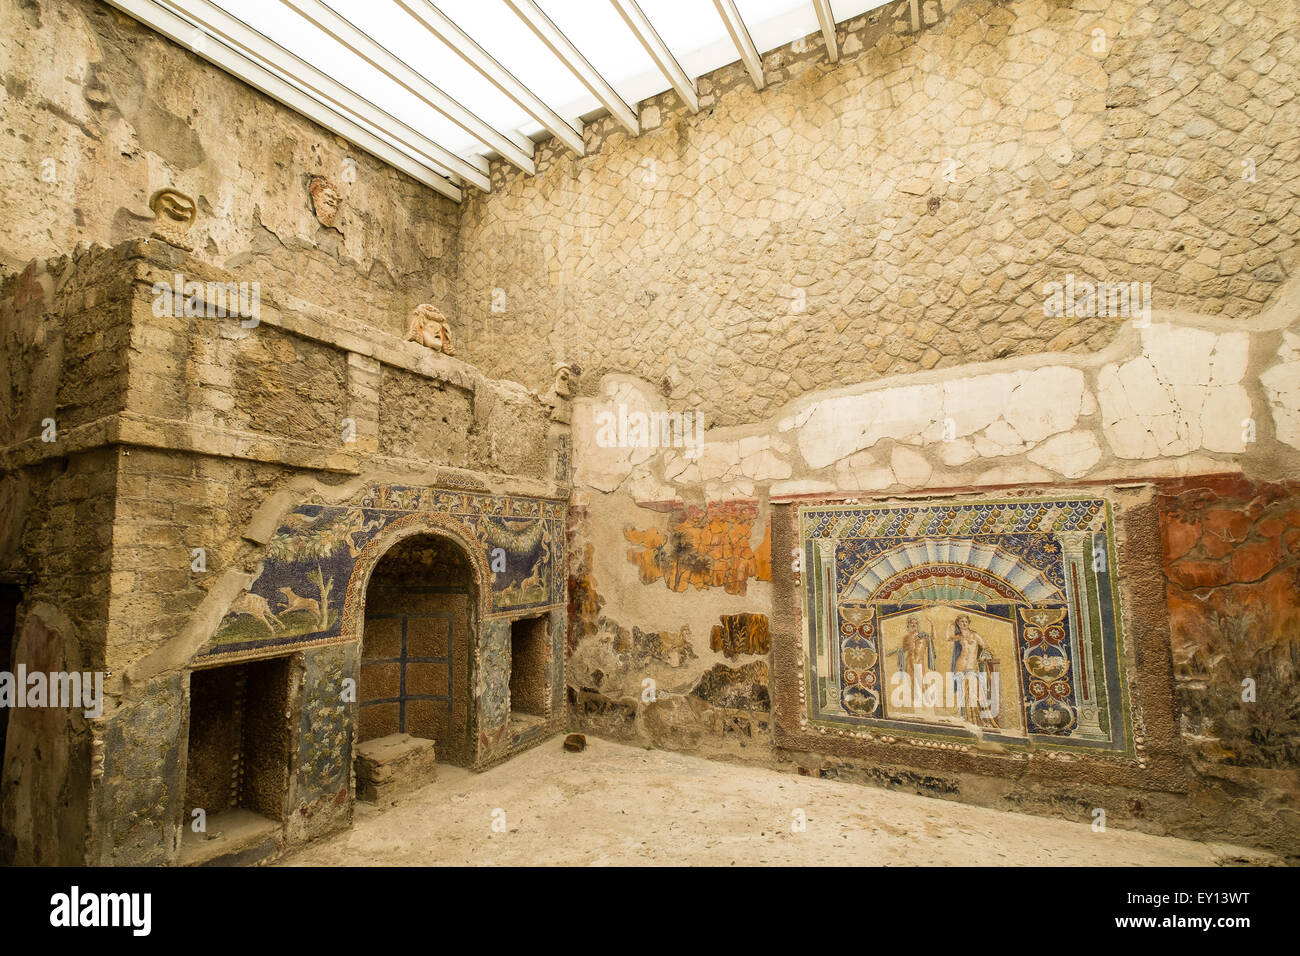 Inside A Roman House In The Ancient Town Of Herculaneum